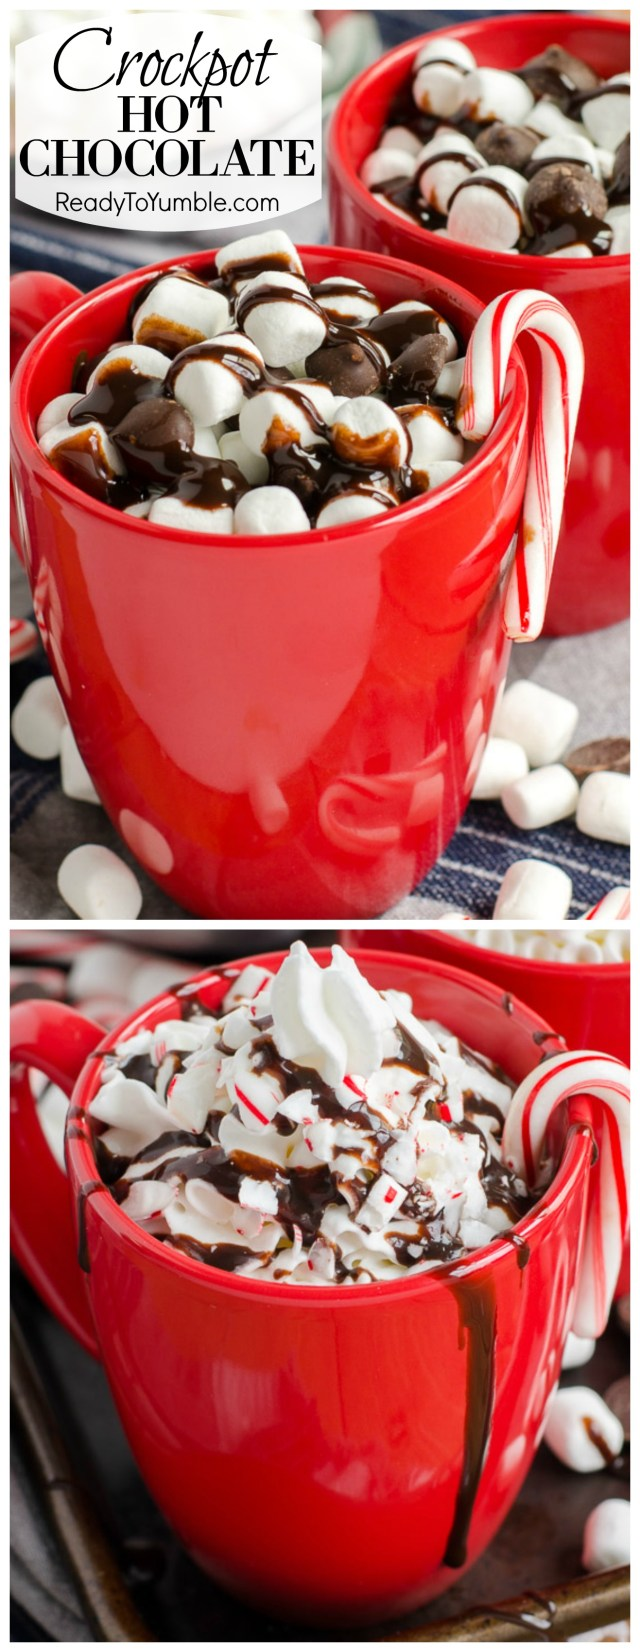 Crockpot Hot Chocolate is the easiest way to make a big batch of everyone's favorite holiday drink. Perfect for parties, or any time you want a super rich and creamy cup of chocolate.